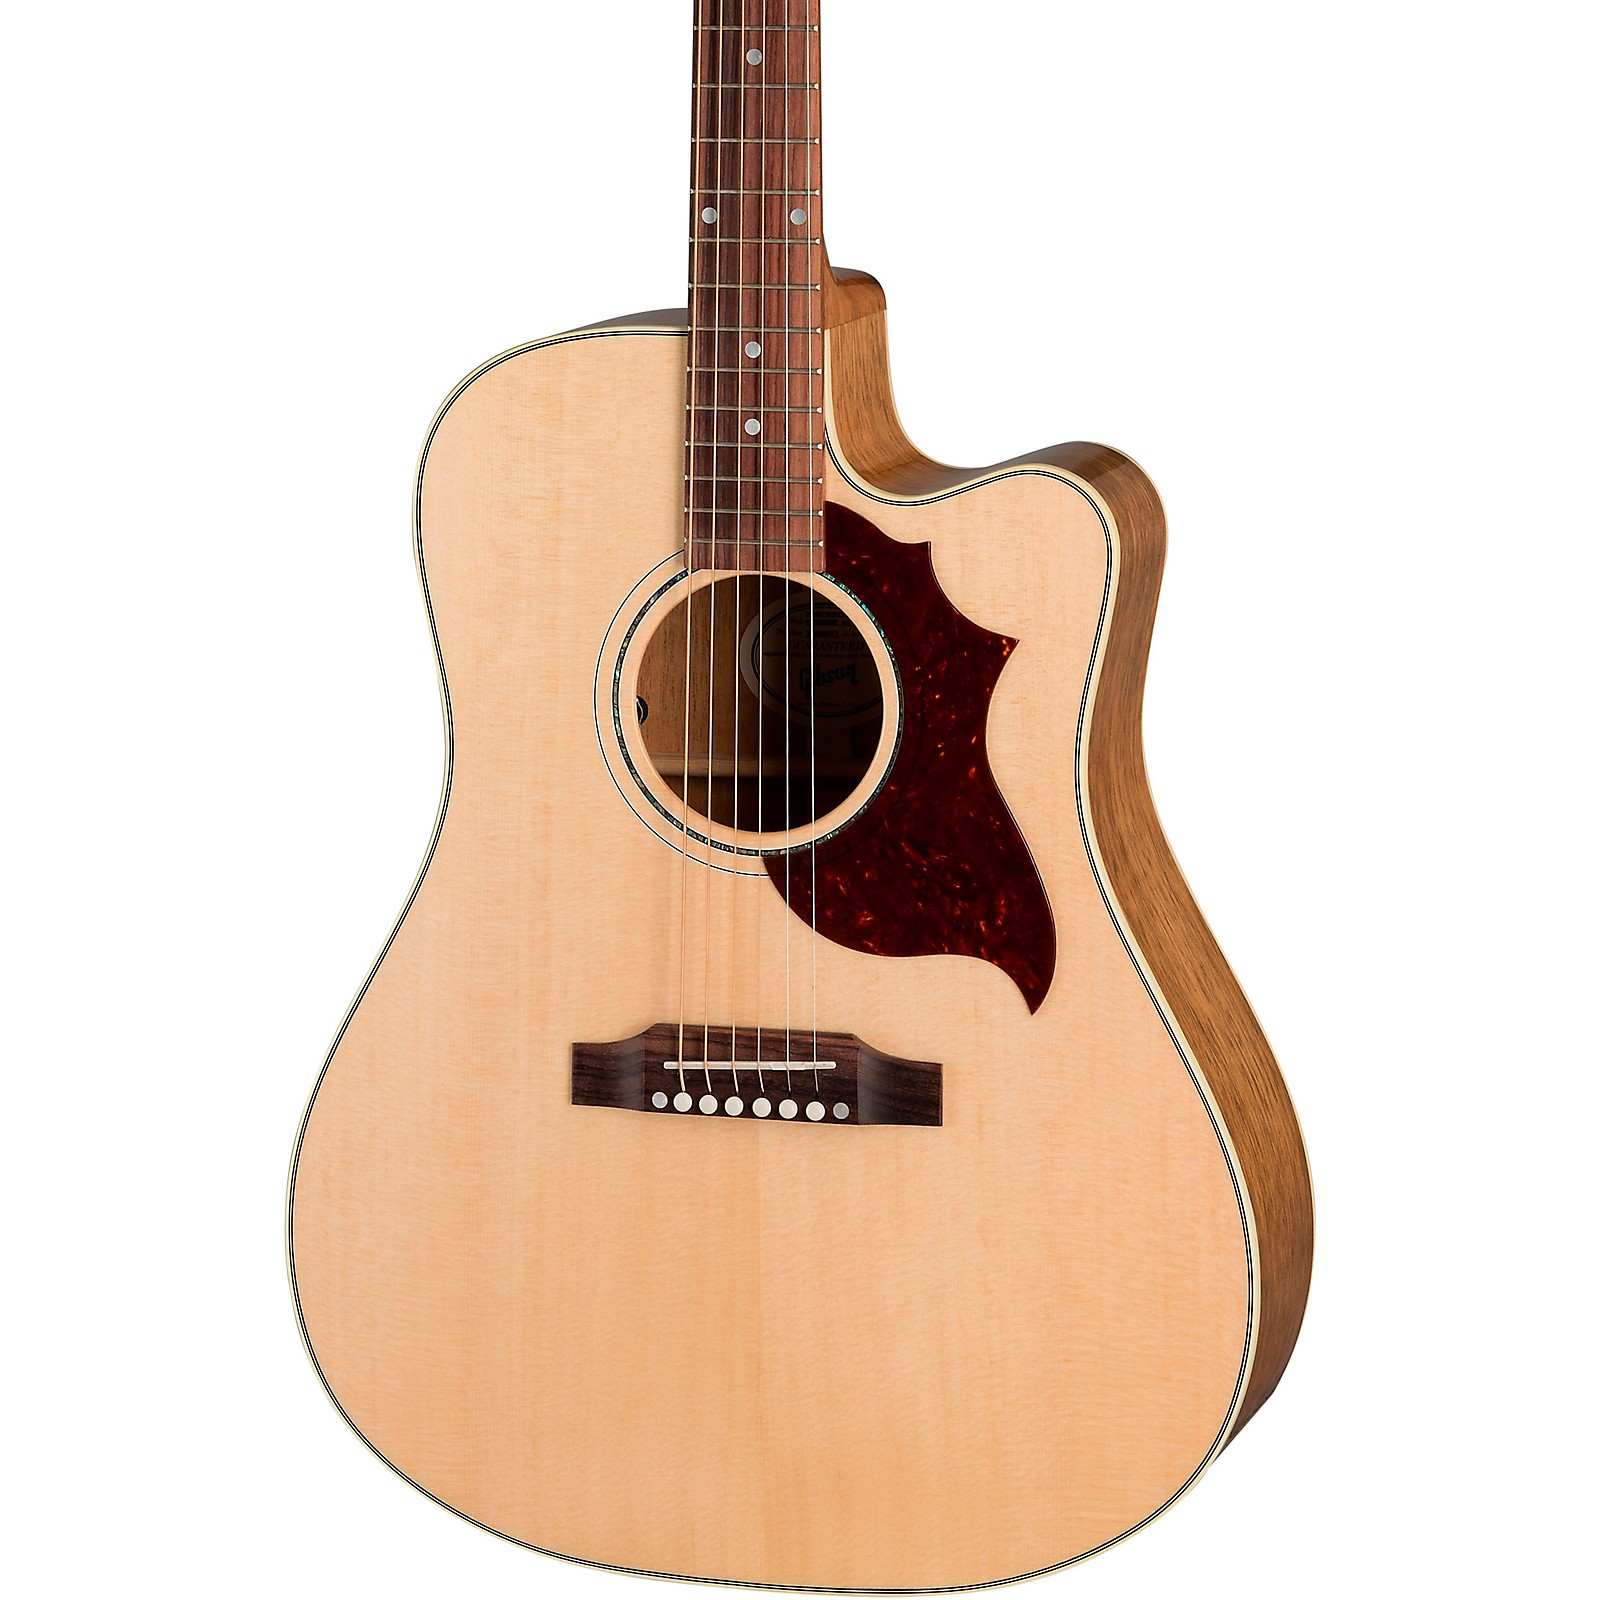 Gibson Hummingbird Mahogany Limited Acoustic-Electric Guitar